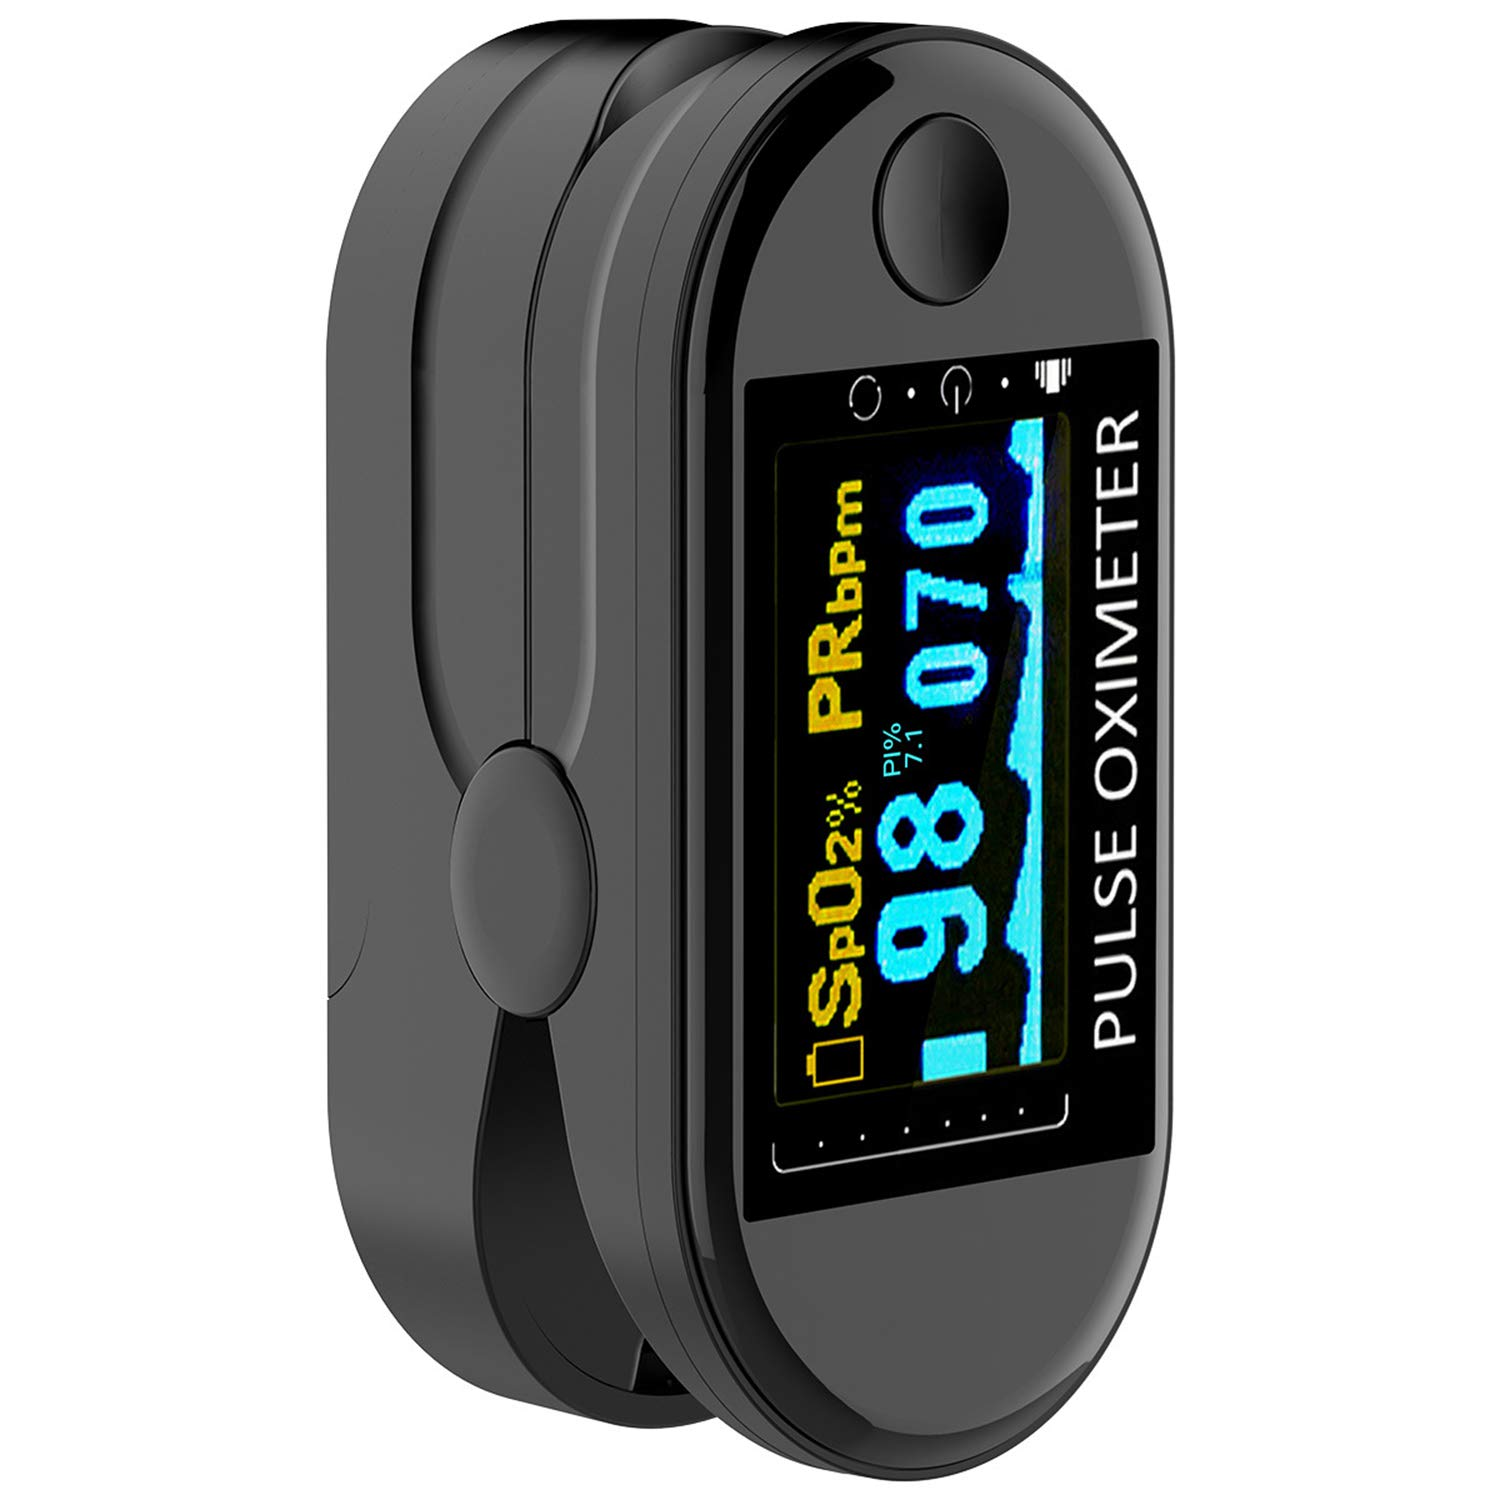 Pulse Oximeter Fingertip, AVBONG Blood Oxygen Saturation Monitor (SpO2) with Pulse Rate Measurements and Pulse Bar Graph, Portable Digital Reading LED Display